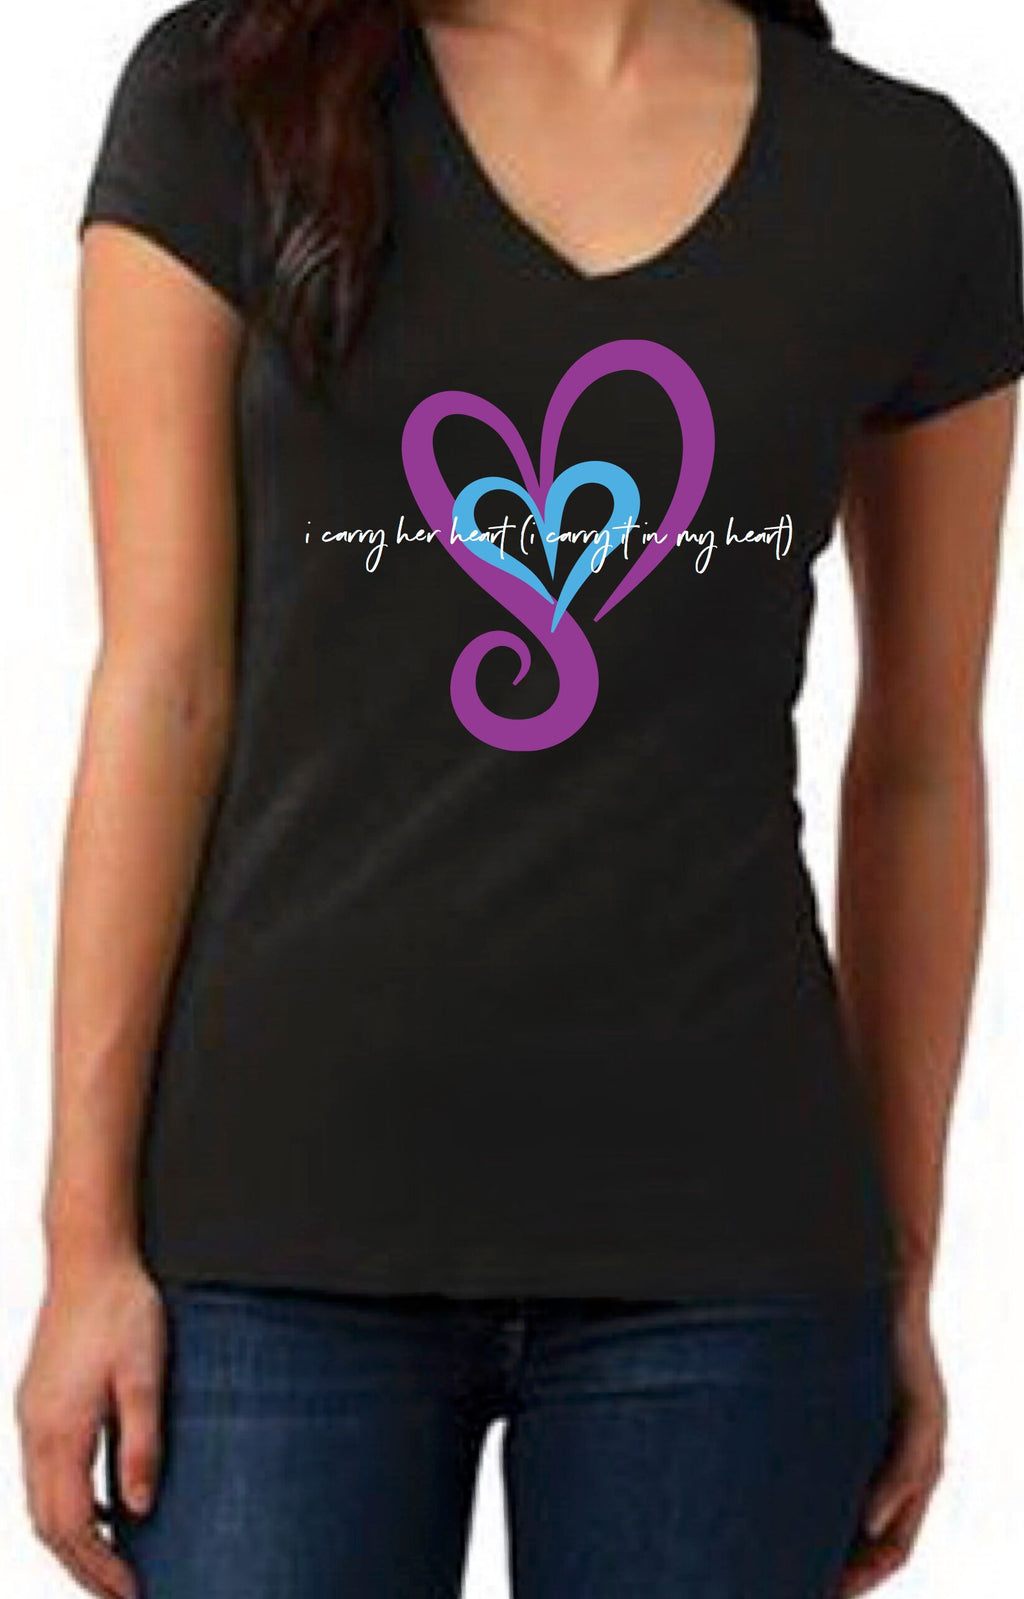 I Carry Her Heart (I carry it in my heart) V-Neck Tee